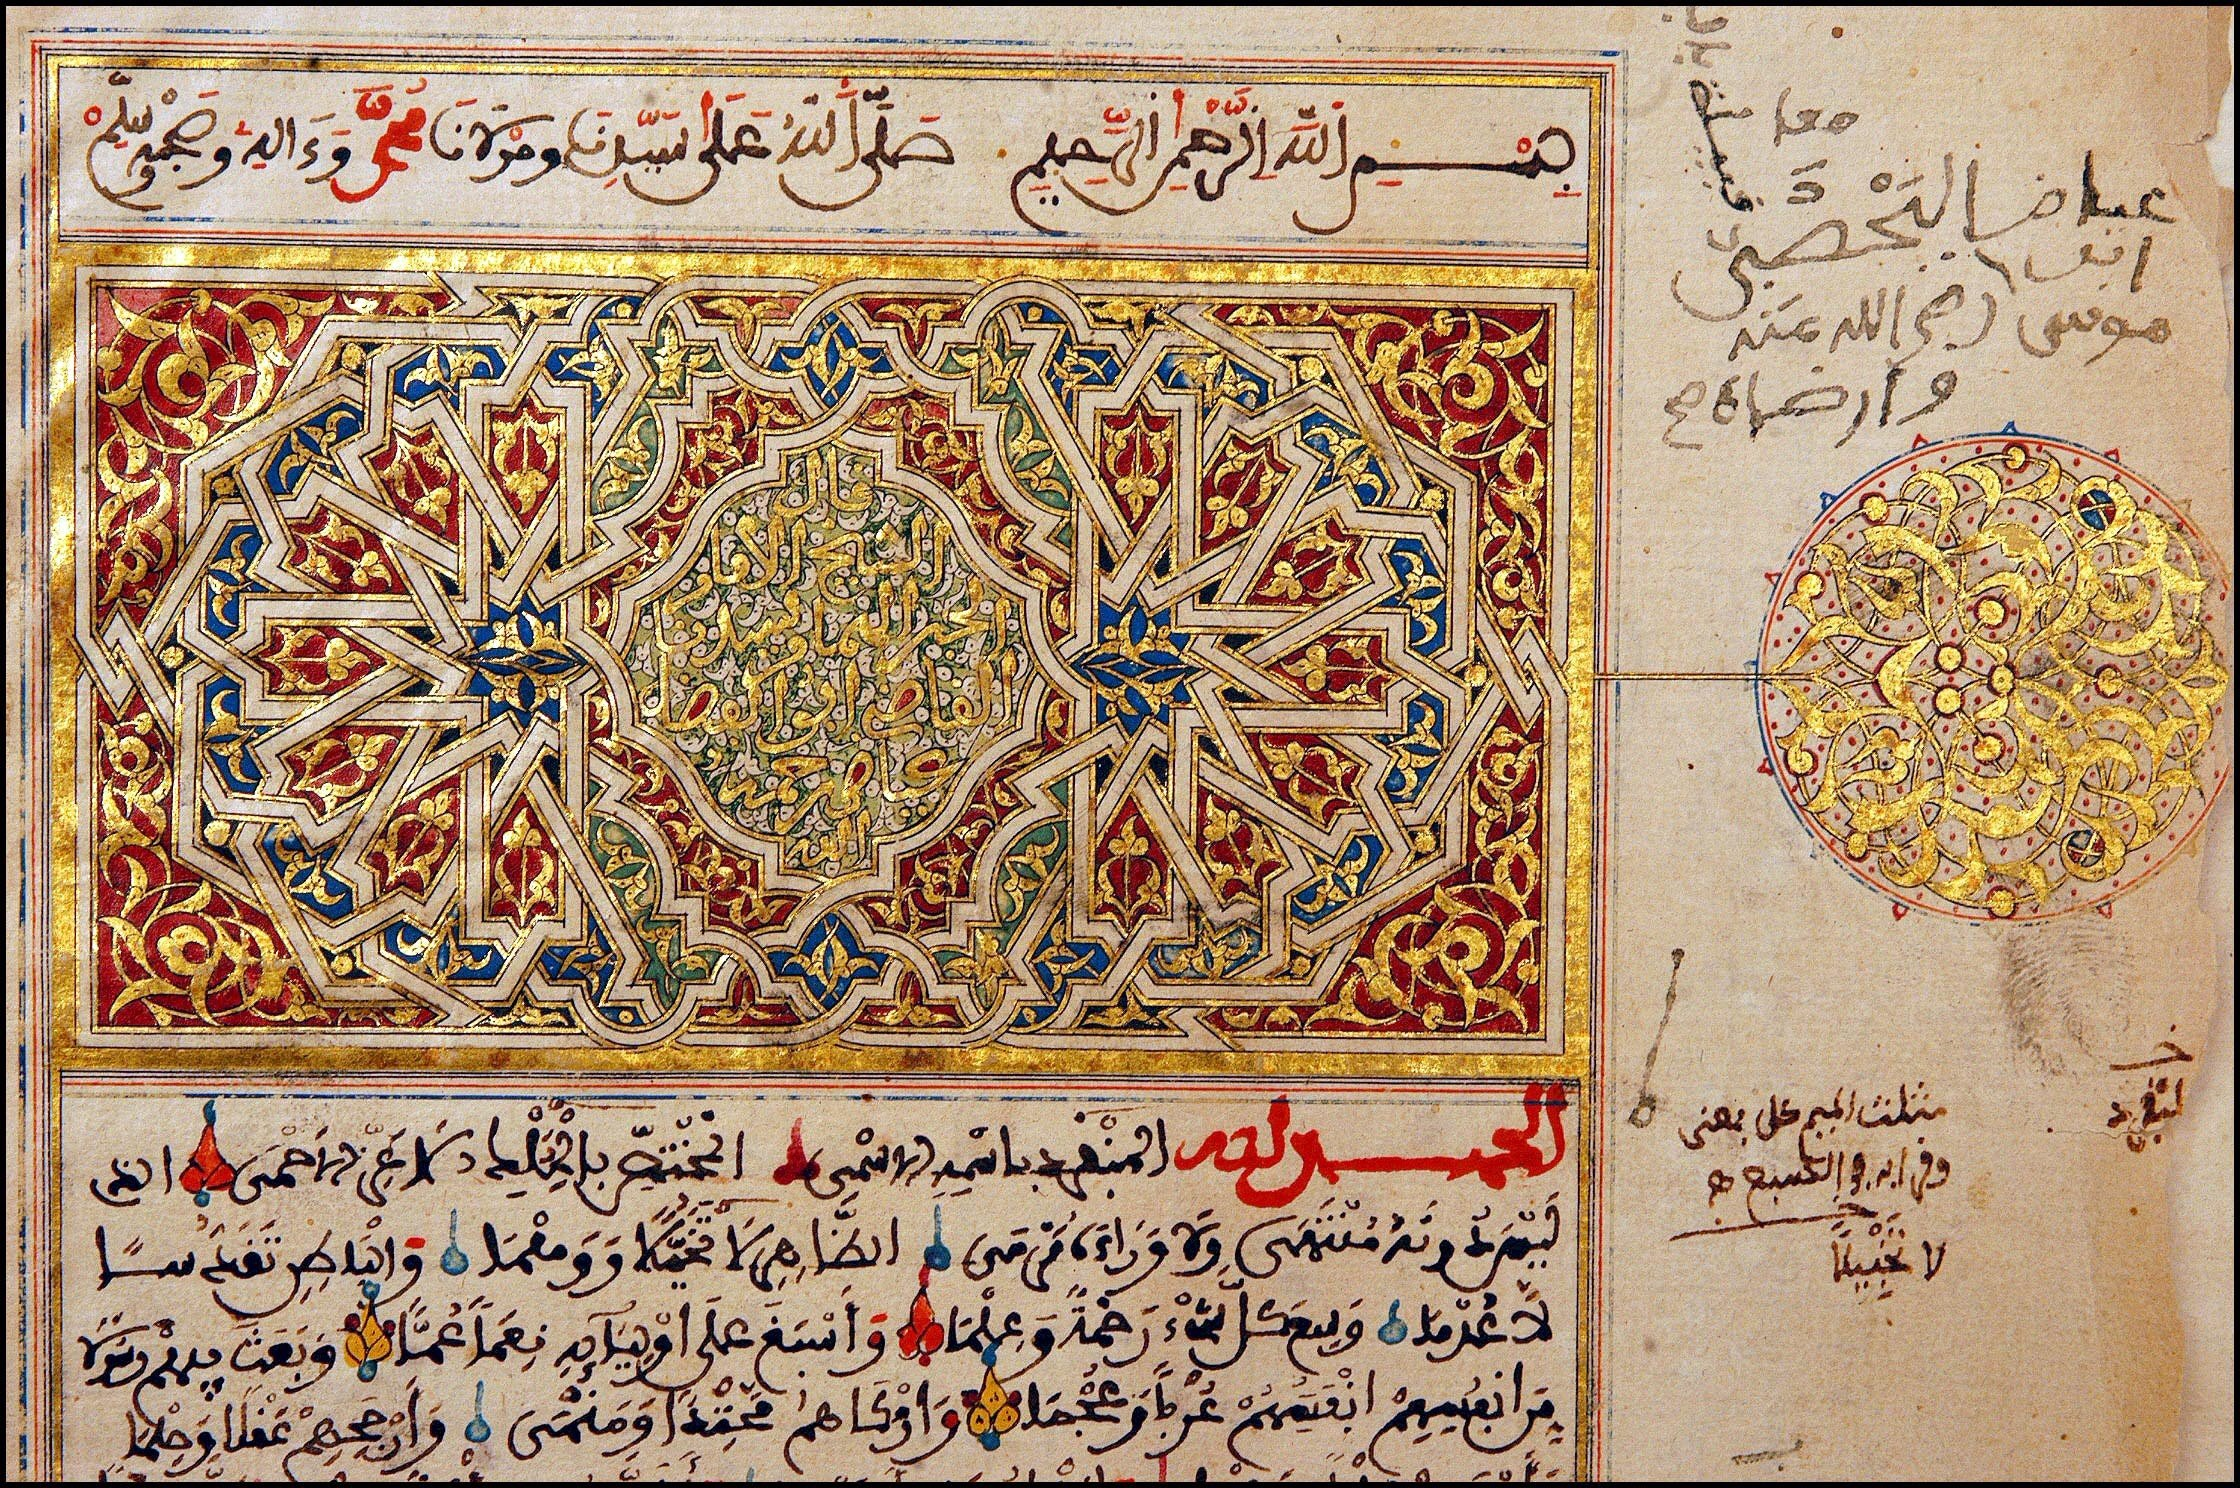 MALI - APRIL 01:  Libraries of the desert: rediscovery and restoration of ancient Arab manuscripts in Bouj Beha, Mali in April, 2003 - Timbuktoo: Library of the Ahmed Baba Institute of Islamic advanced studies and research. A detailed view on the illumination of a Koran bought in Fes in 1223, for 40 golden mithqals.  (Photo by Xavier ROSSI/Gamma-Rapho via Getty Images)